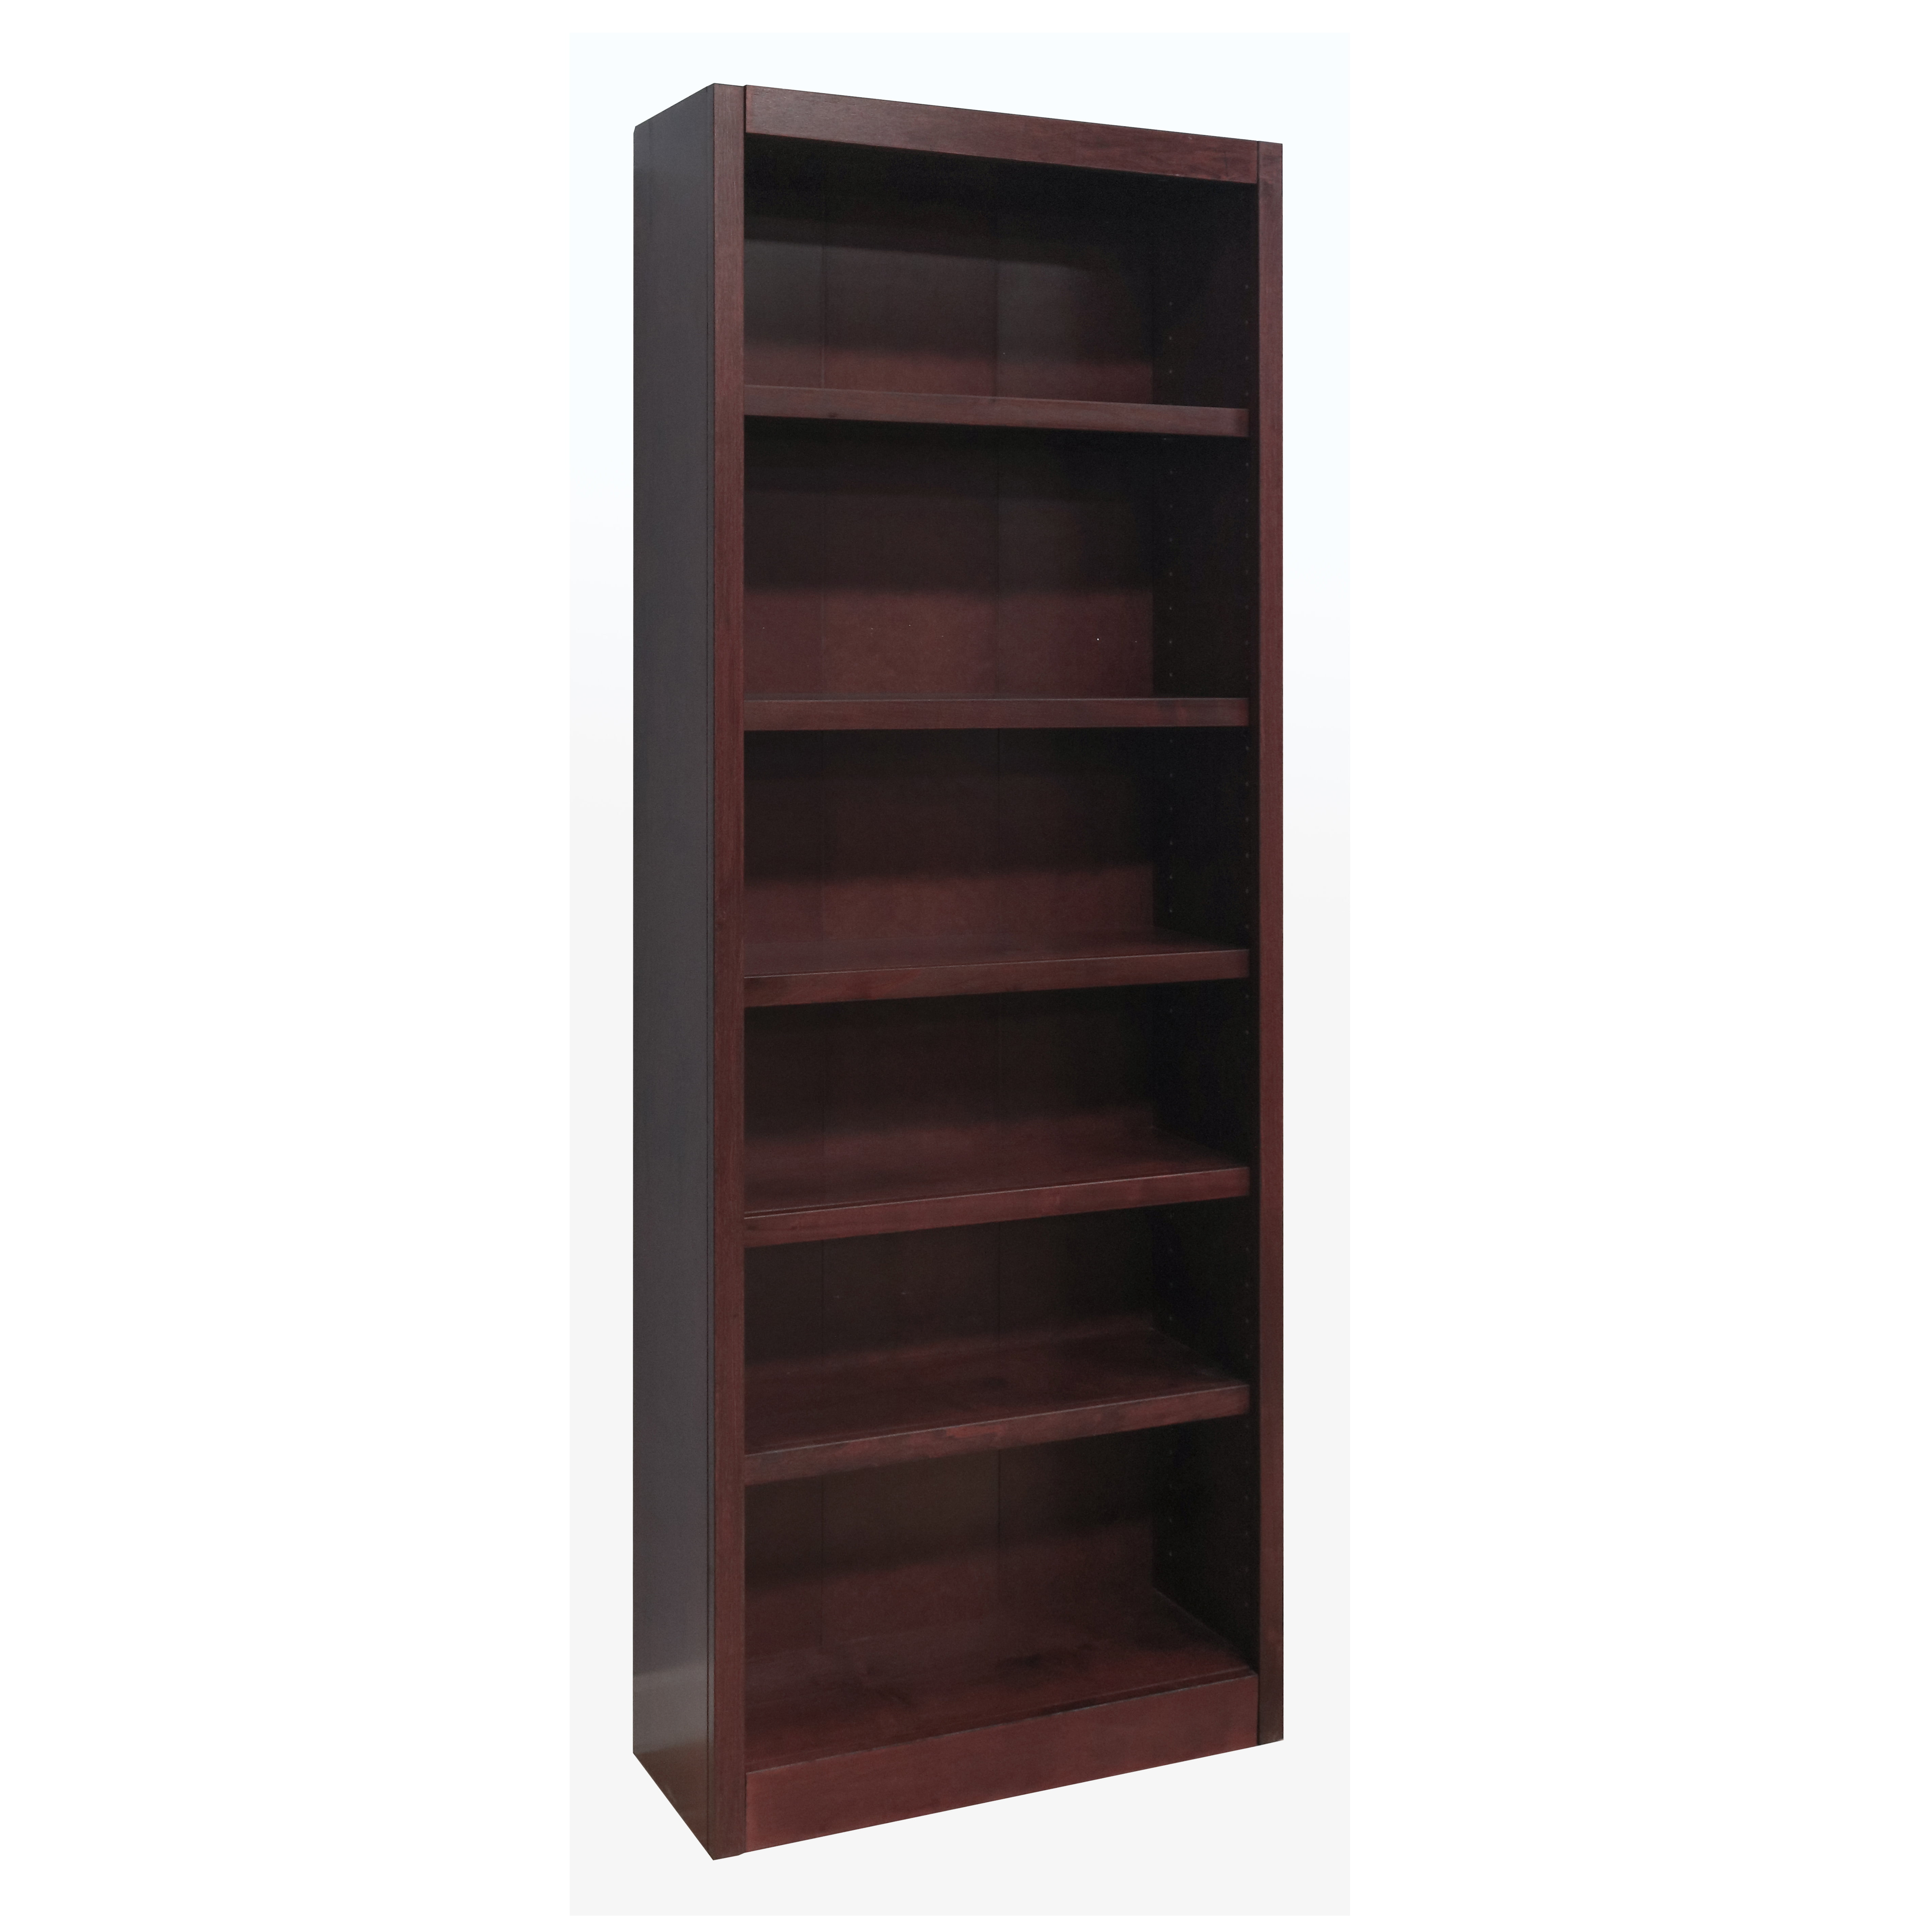 Concepts In Wood 6 Shelf Wood Bookcase 84 Inch Tall